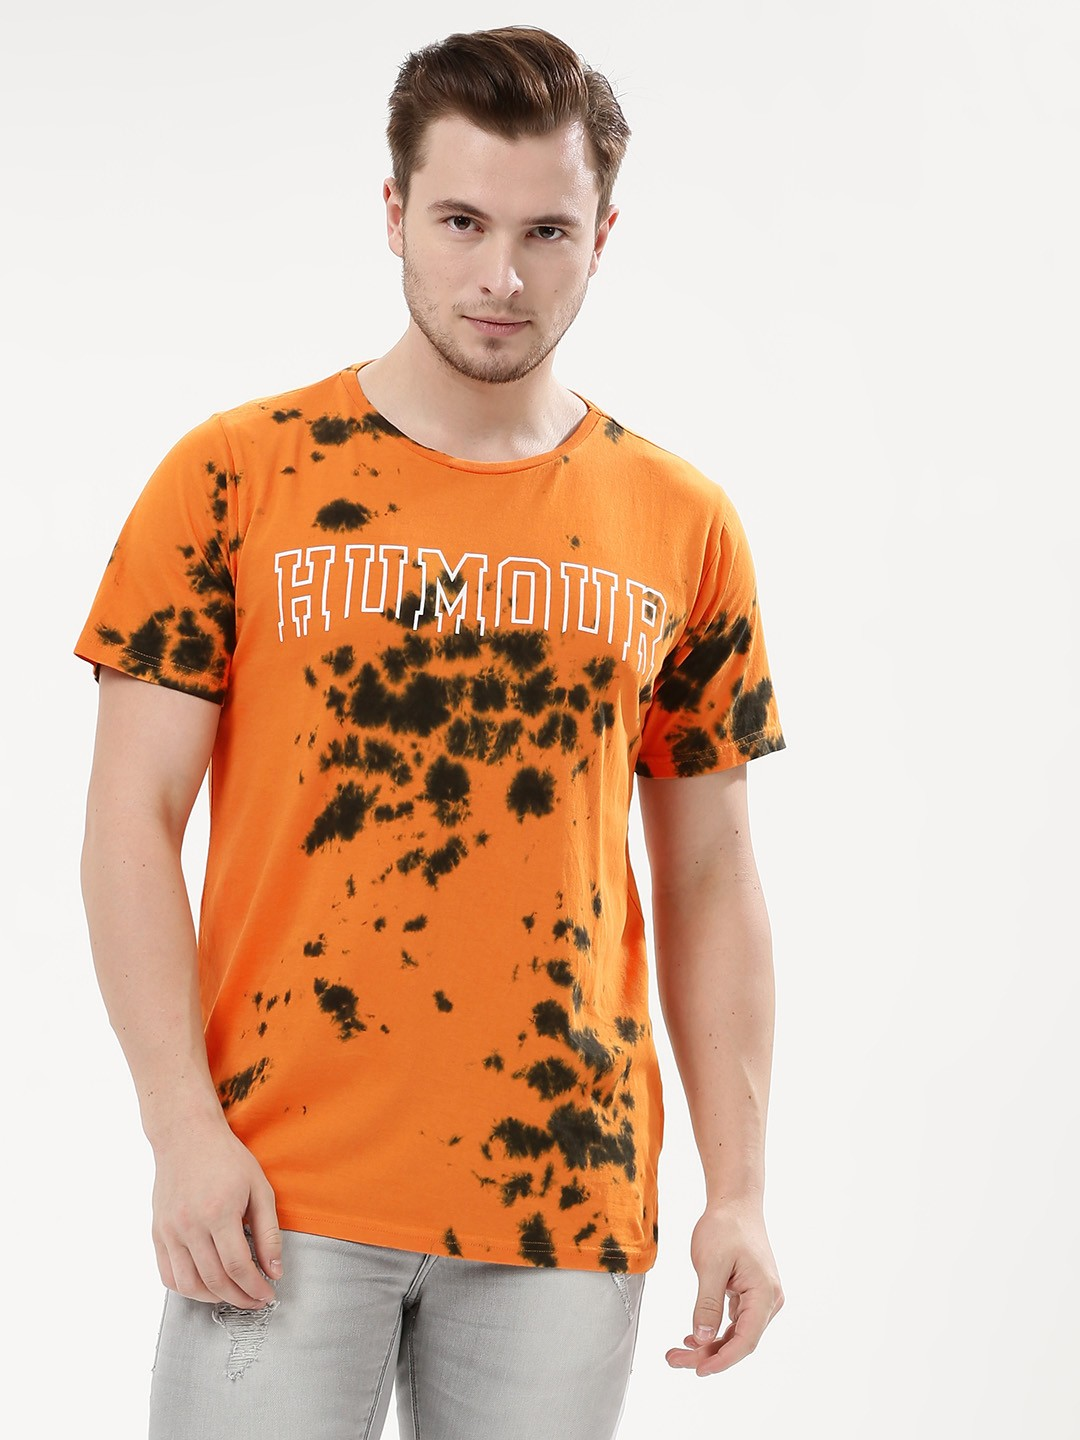 Adamo London Orange Printed Tie Dye T-Shirt 1